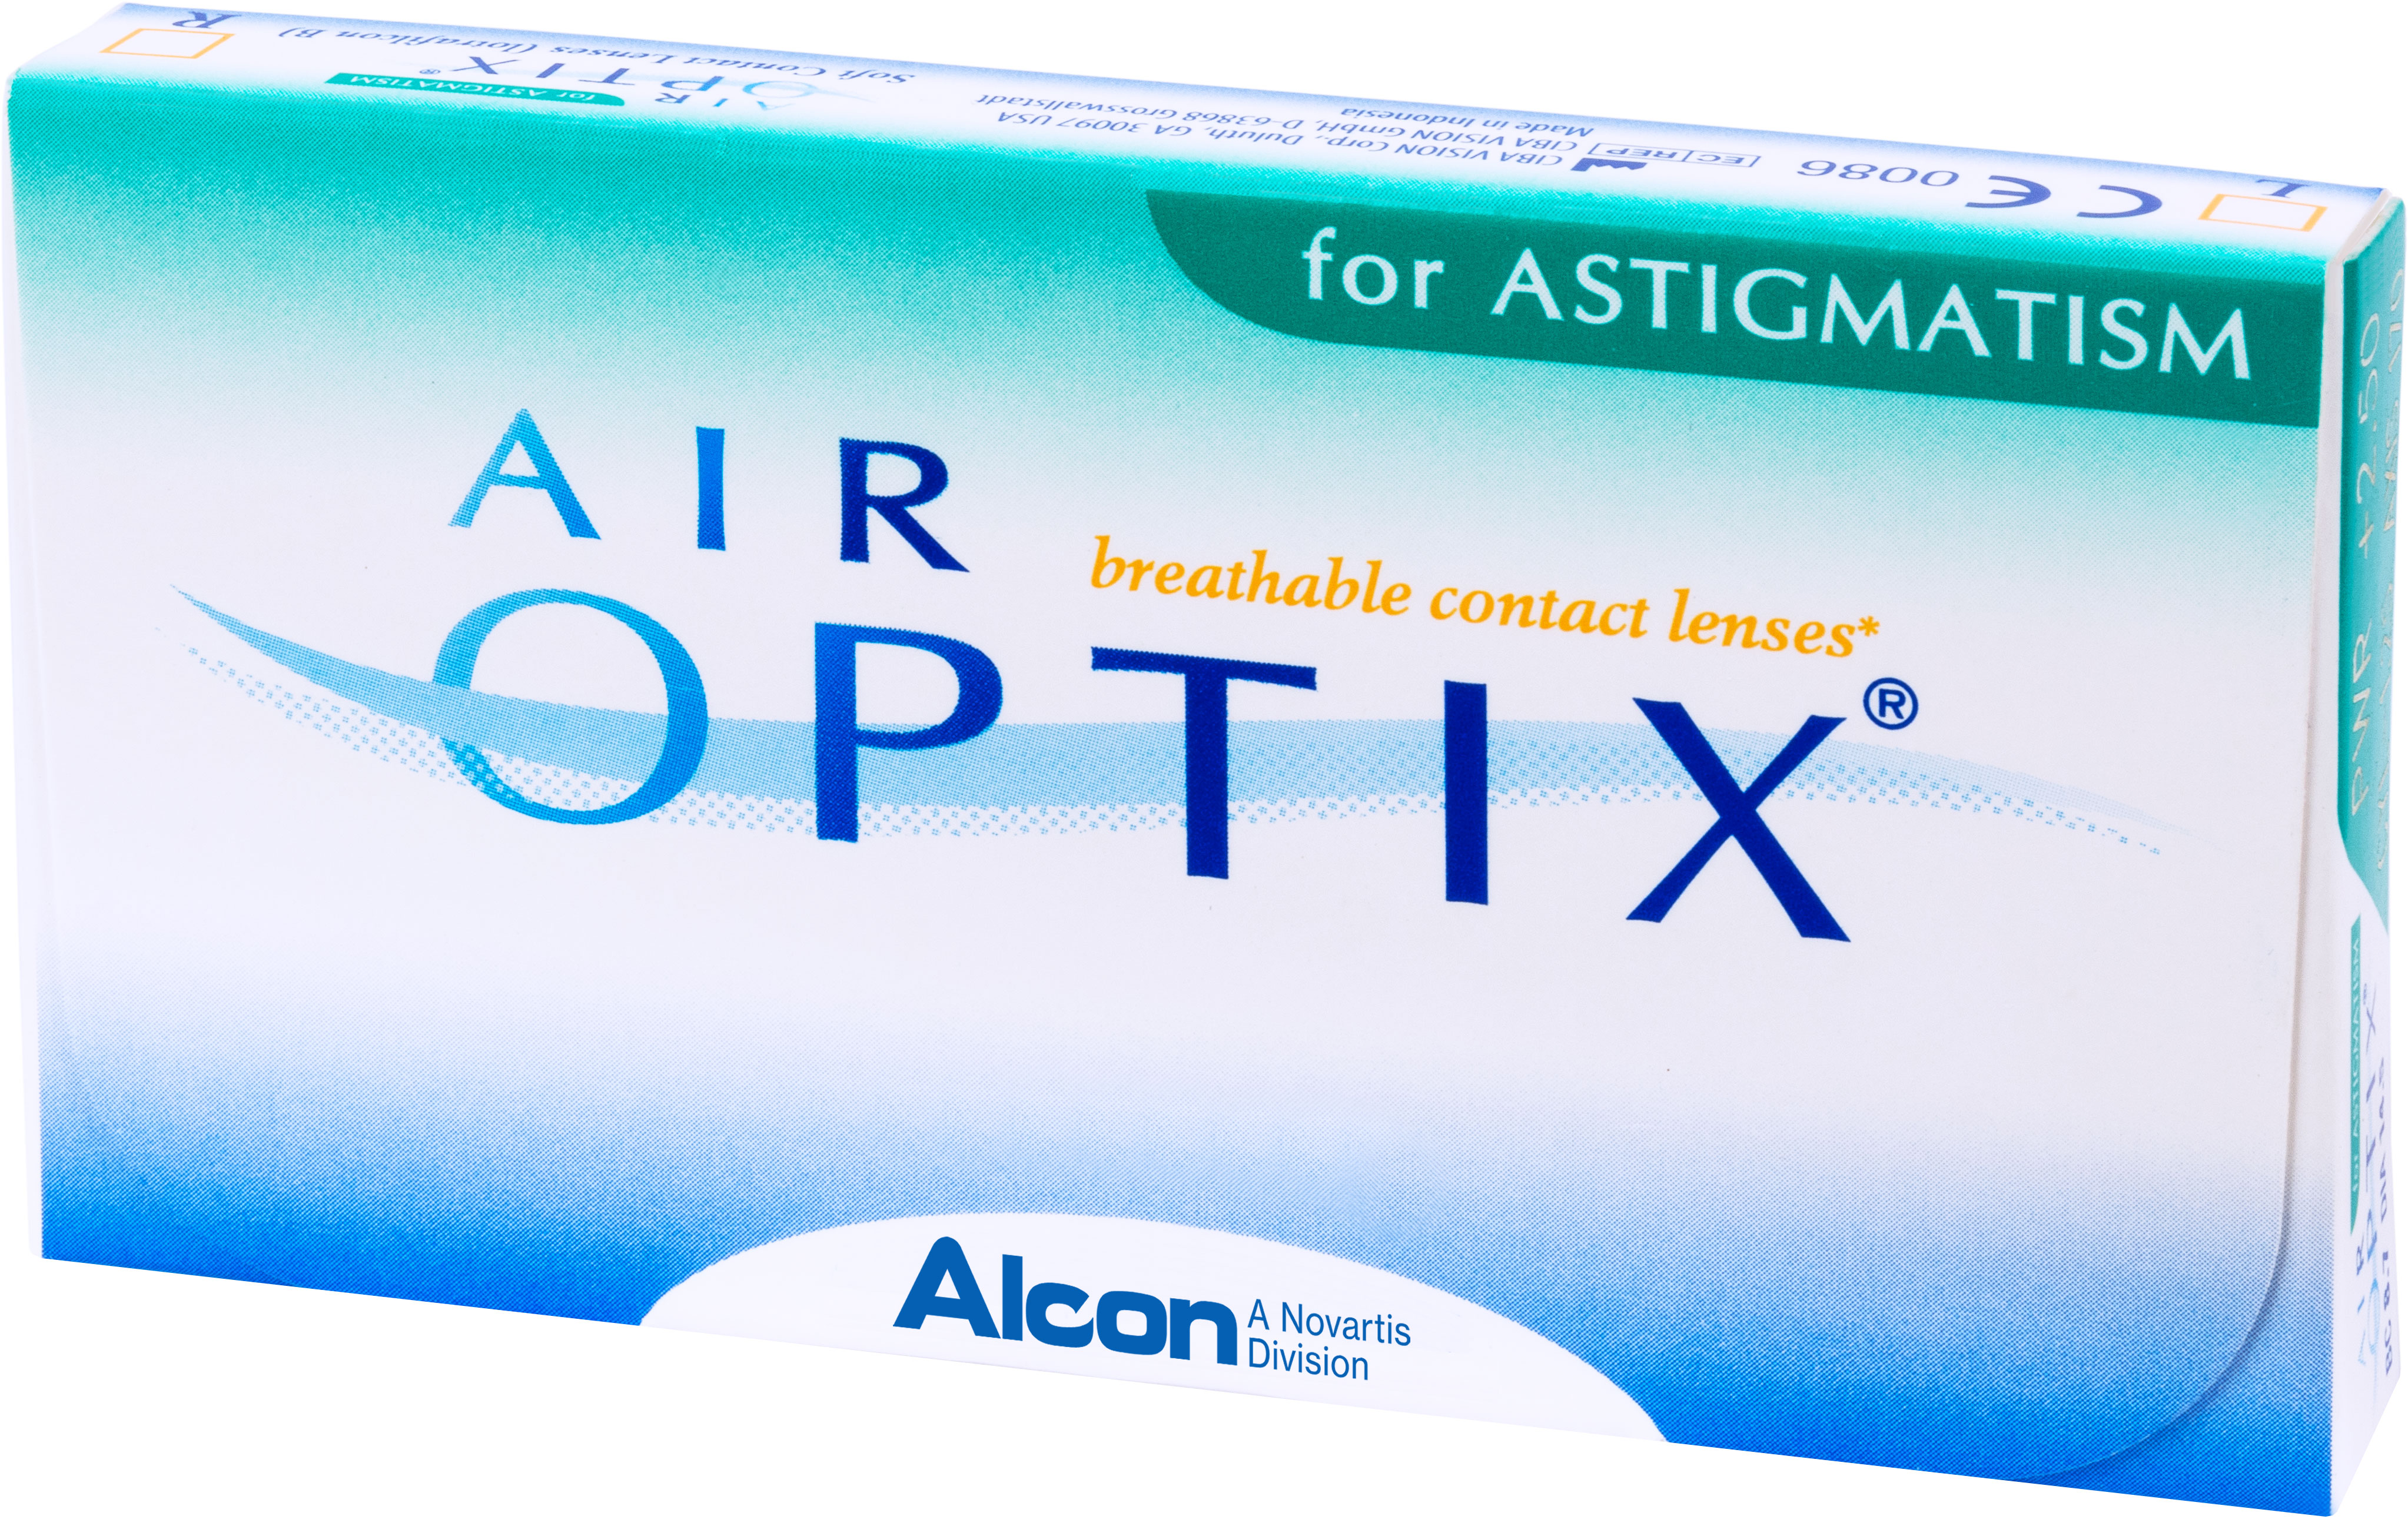 Аlcon контактные линзы Air Optix for Astigmatism 3pk /BC 8.7/DIA14.5/PWR -8.50/CYL -1.75/AXIS 90100015726with Hydraclear